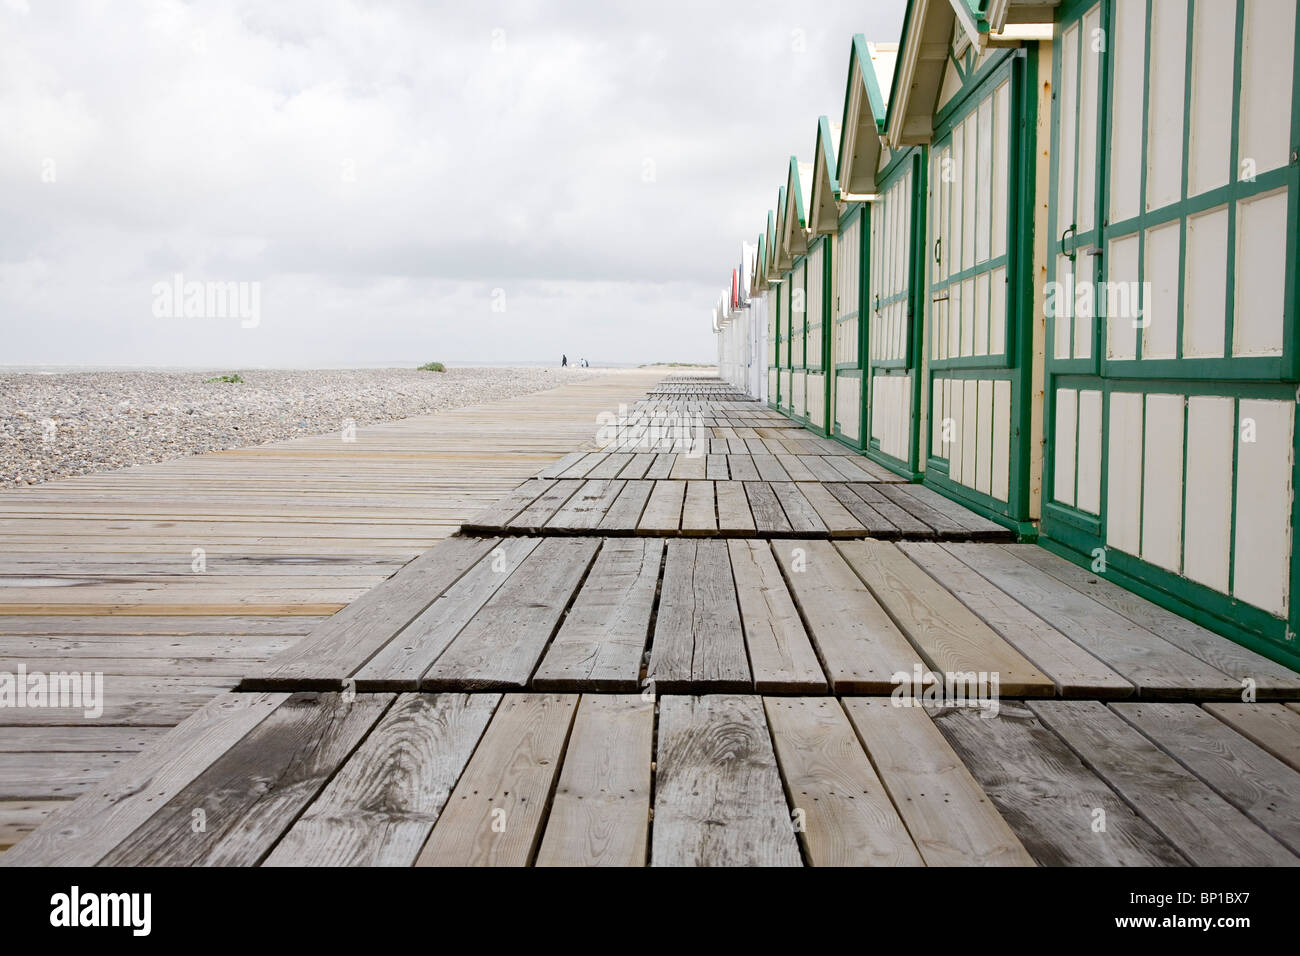 France, Baie de Somme, Cayeux, beach huts, 08/20/08. - Stock Image